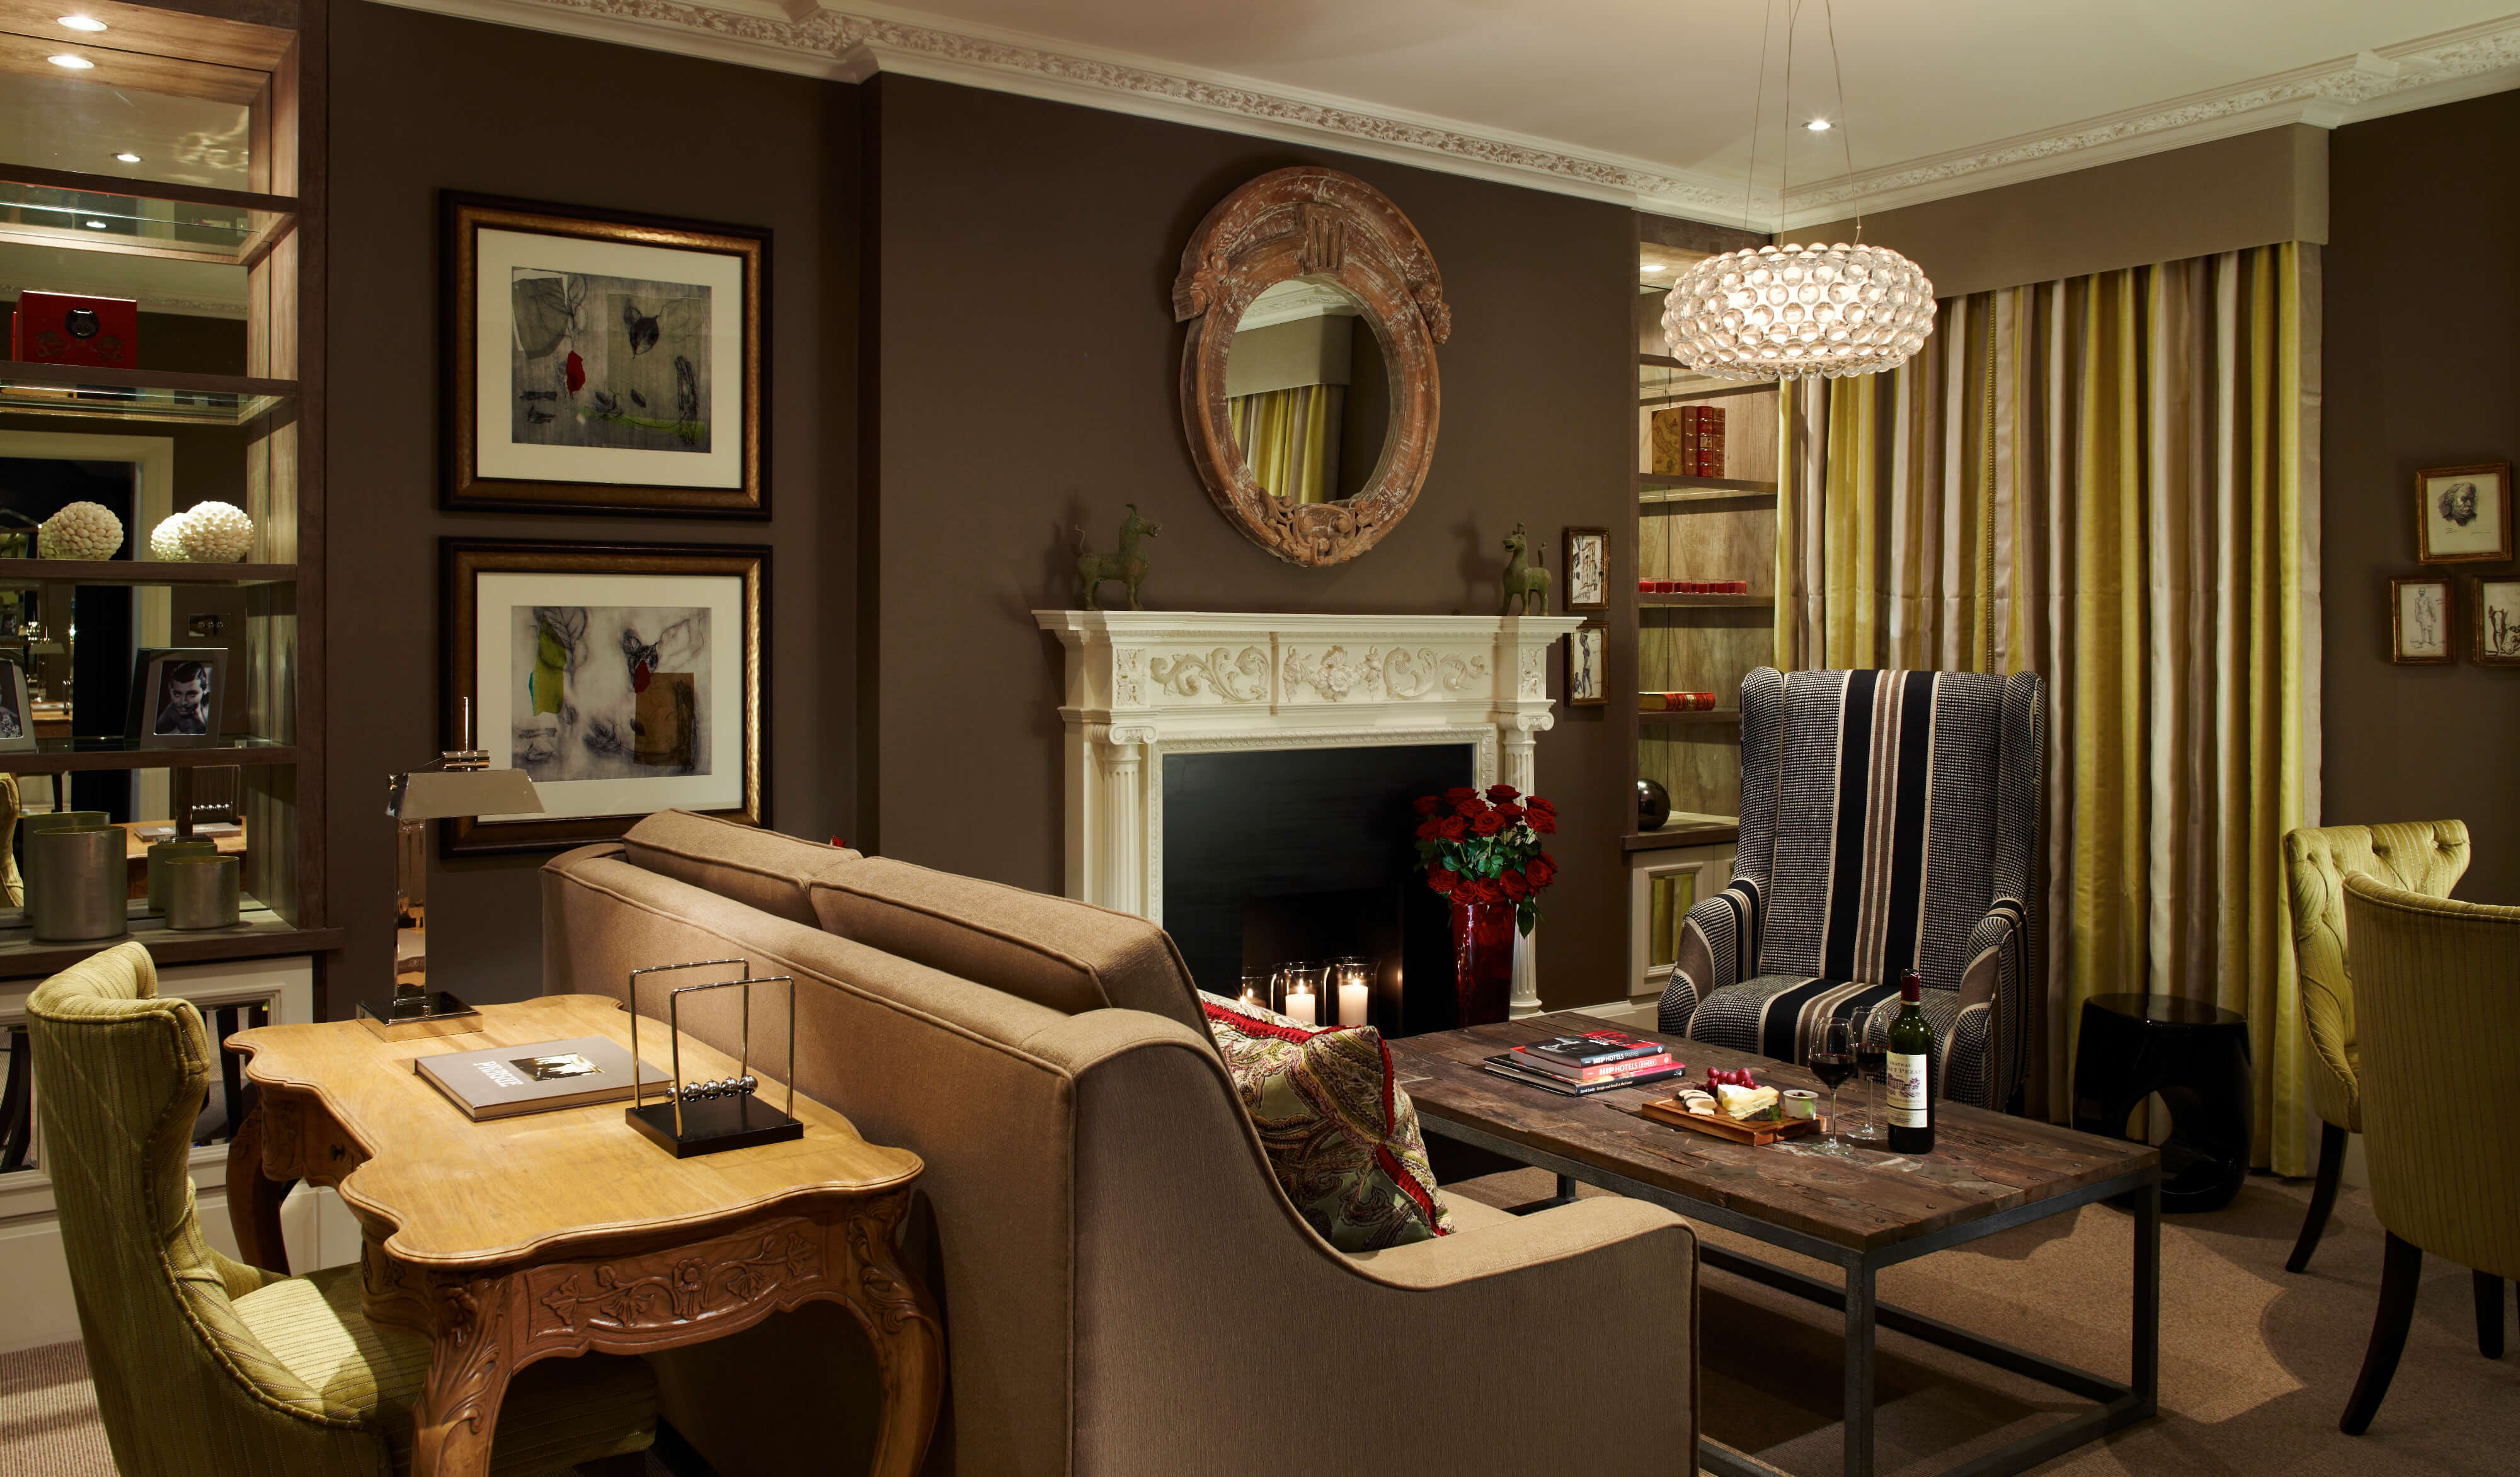 13 Half Moon St Five Star Serviced Apartments In Mayfair